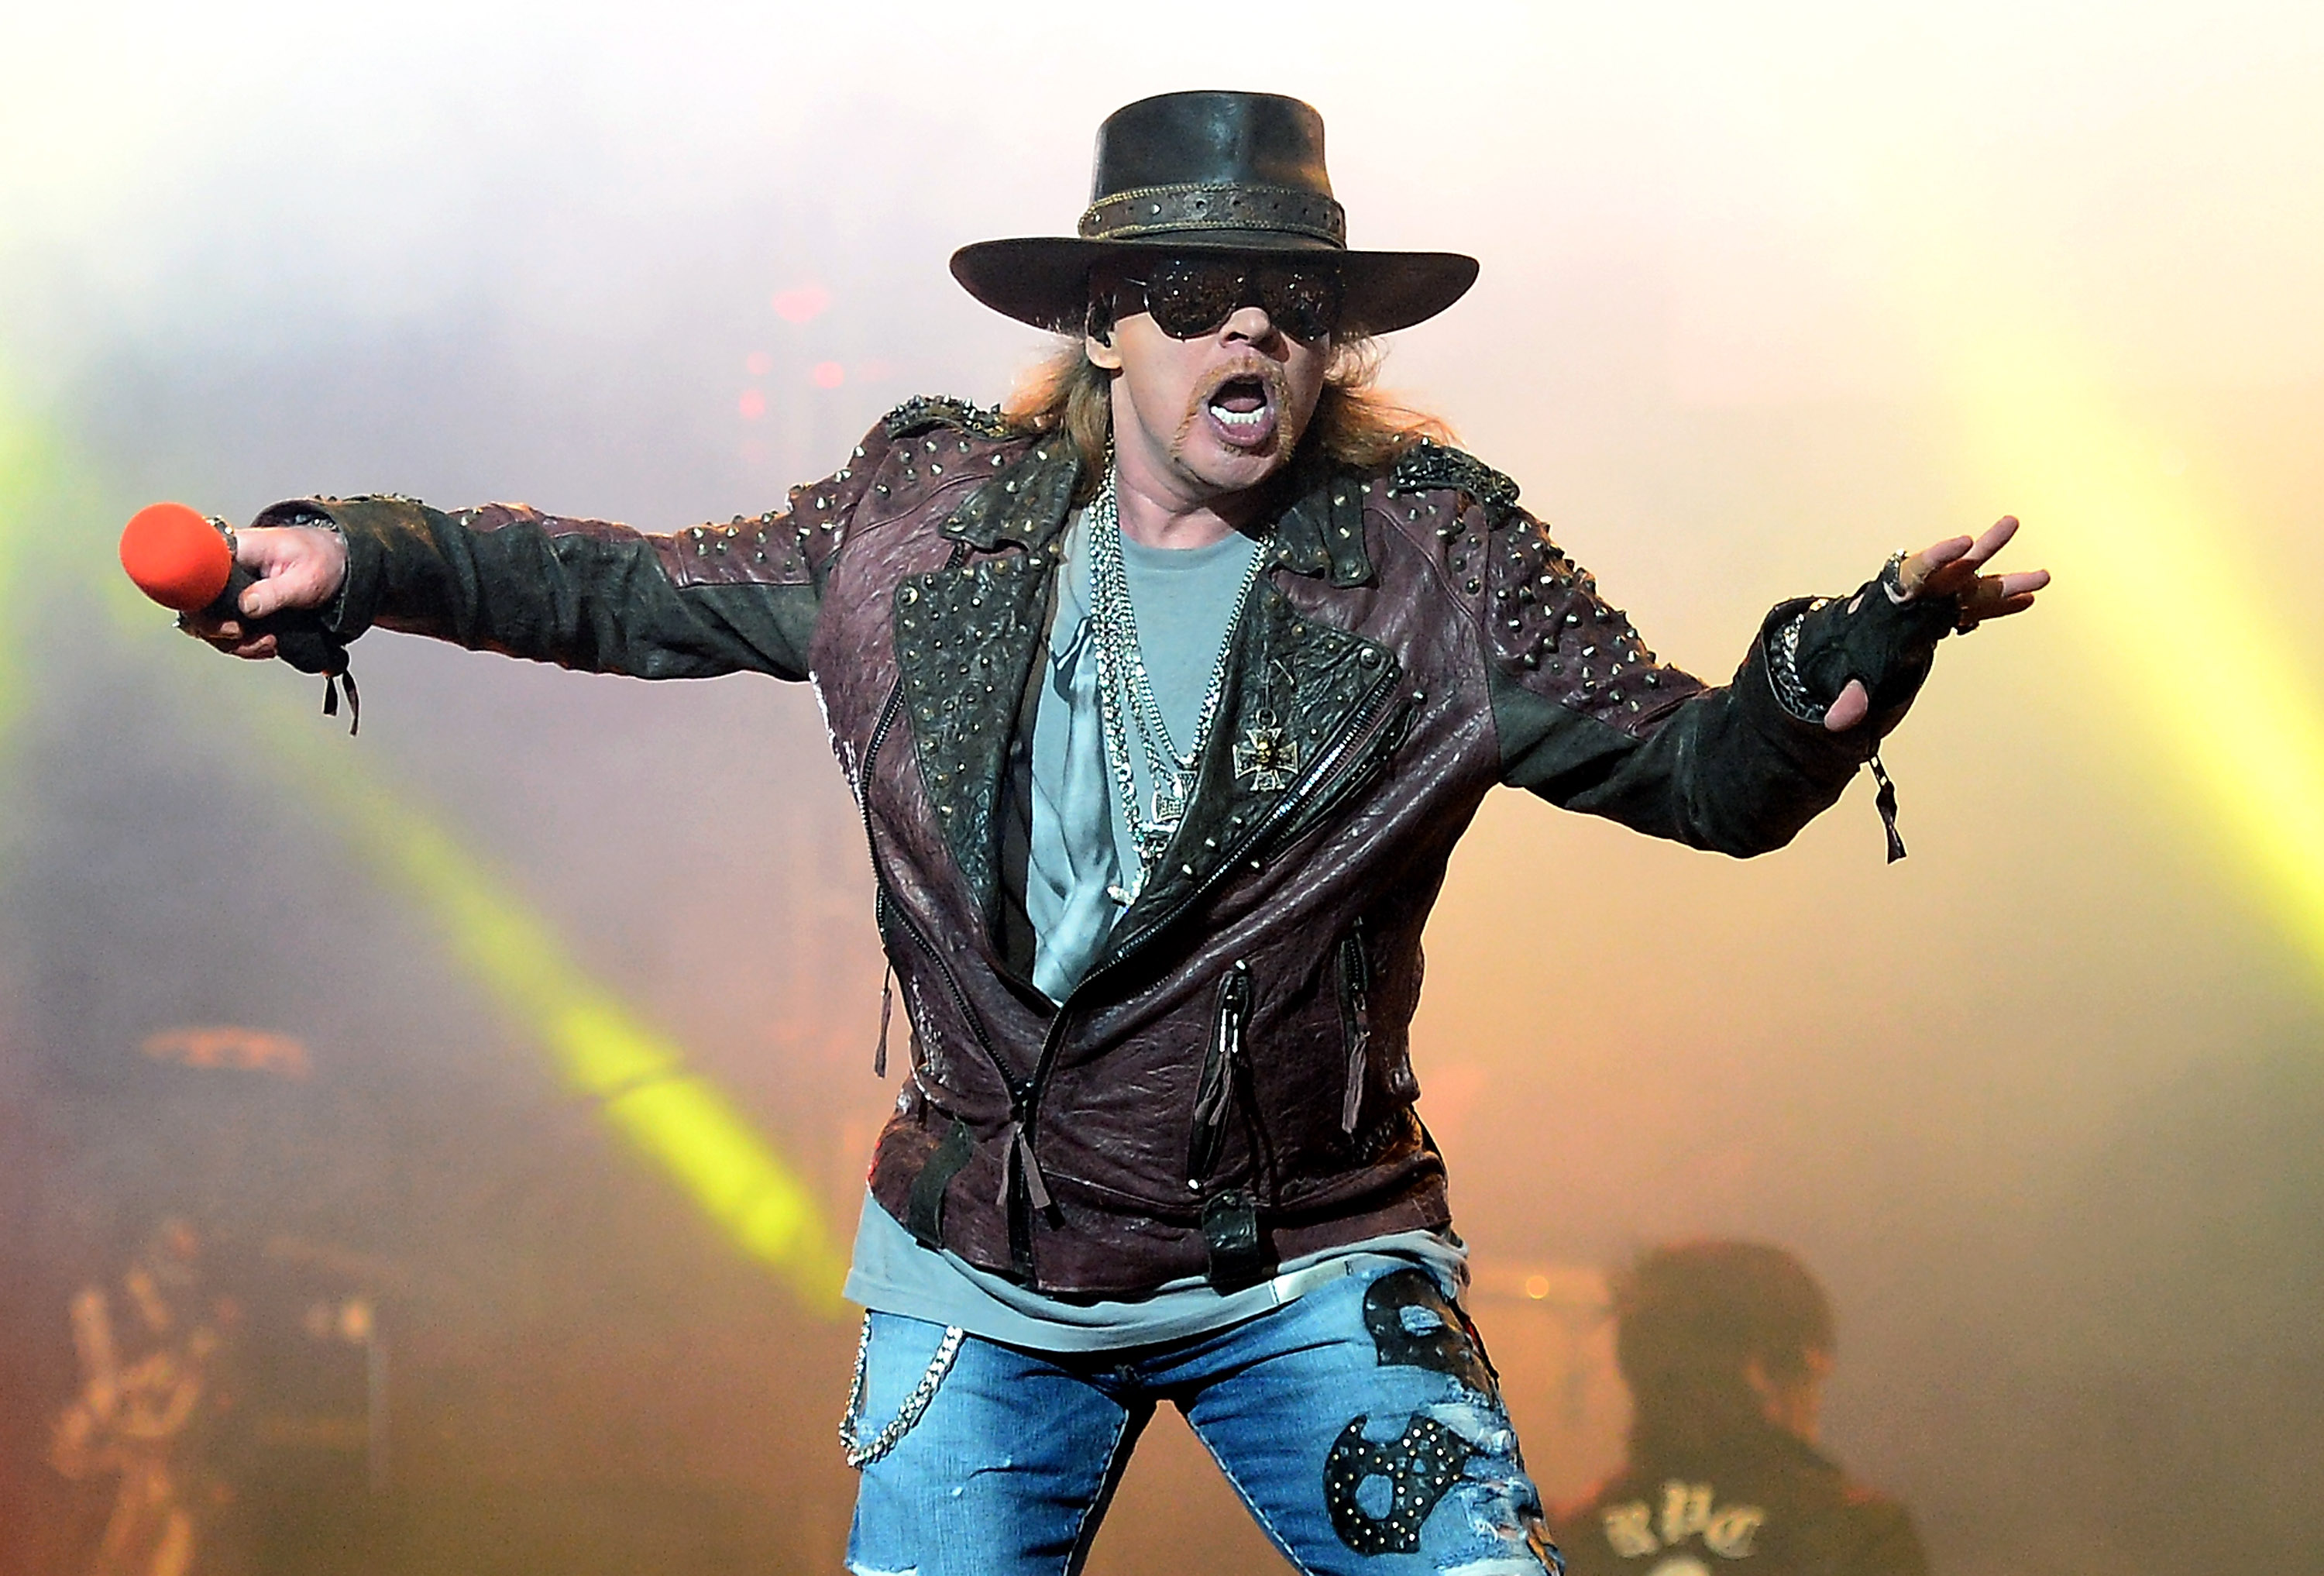 Axl Rose hangs with the 'Scooby-Doo' gang in an animated cameo